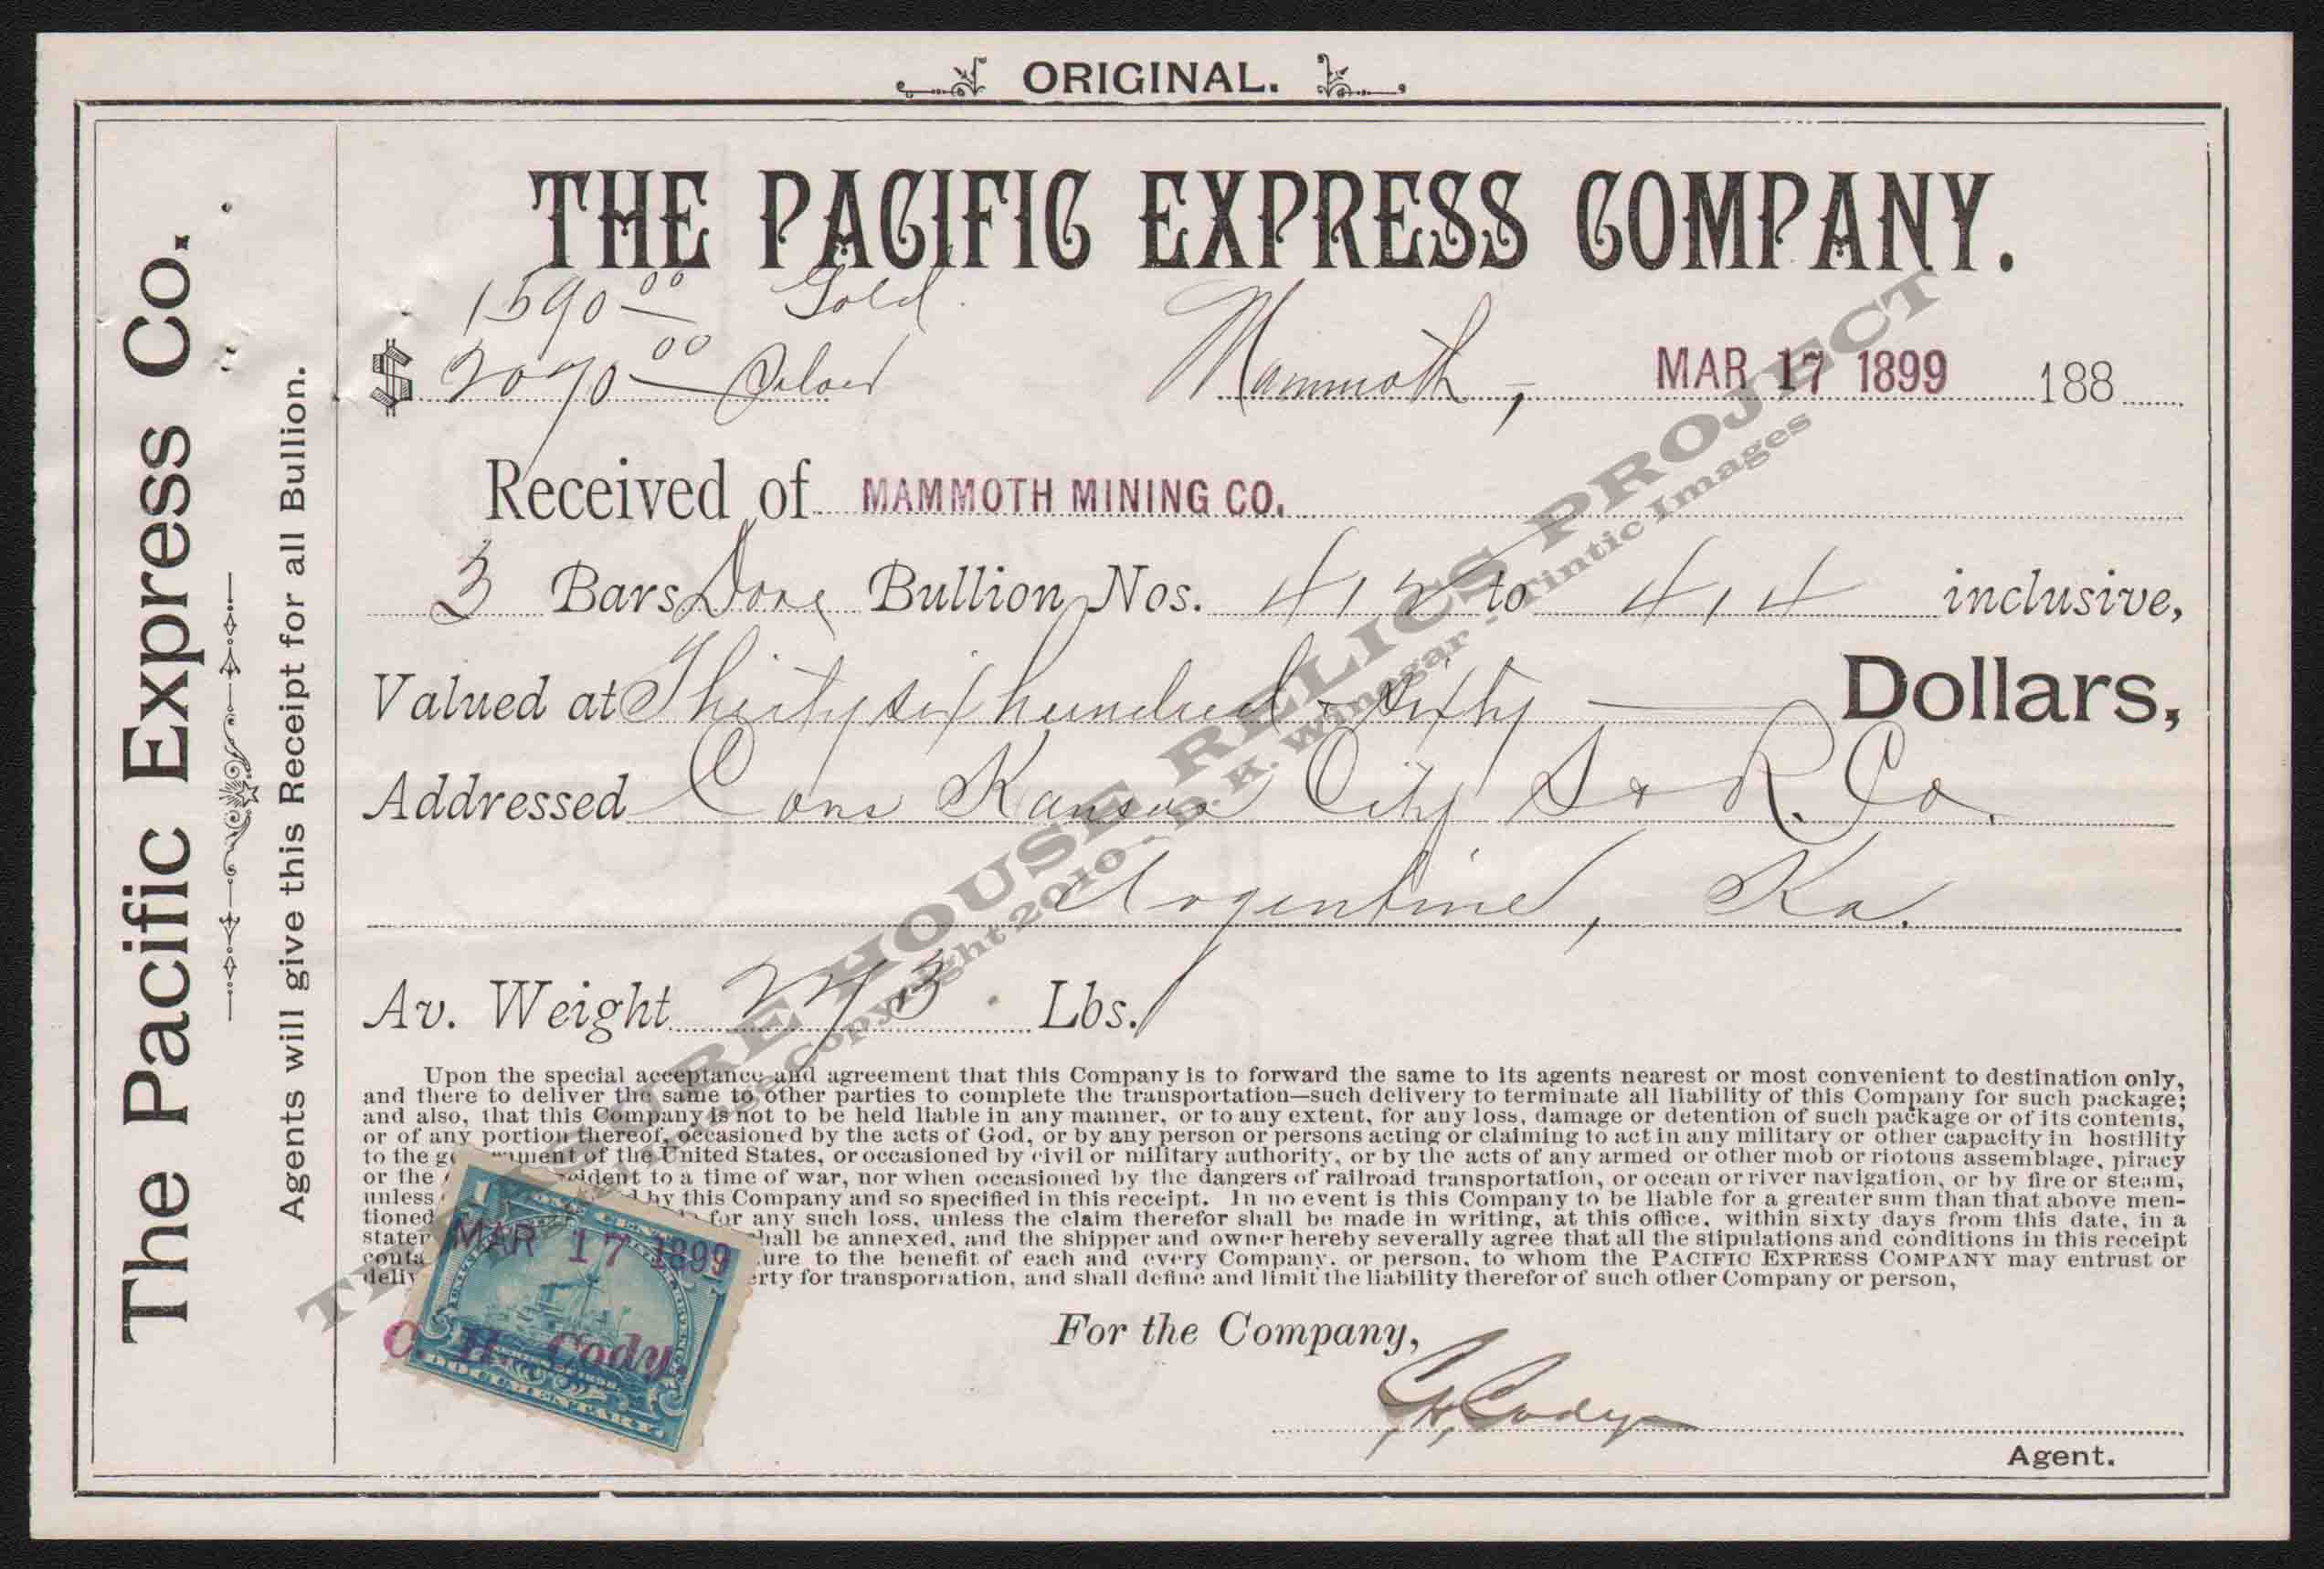 PACIFIC_EXPRESS_COMPANY_3_17_1899_300.jpg